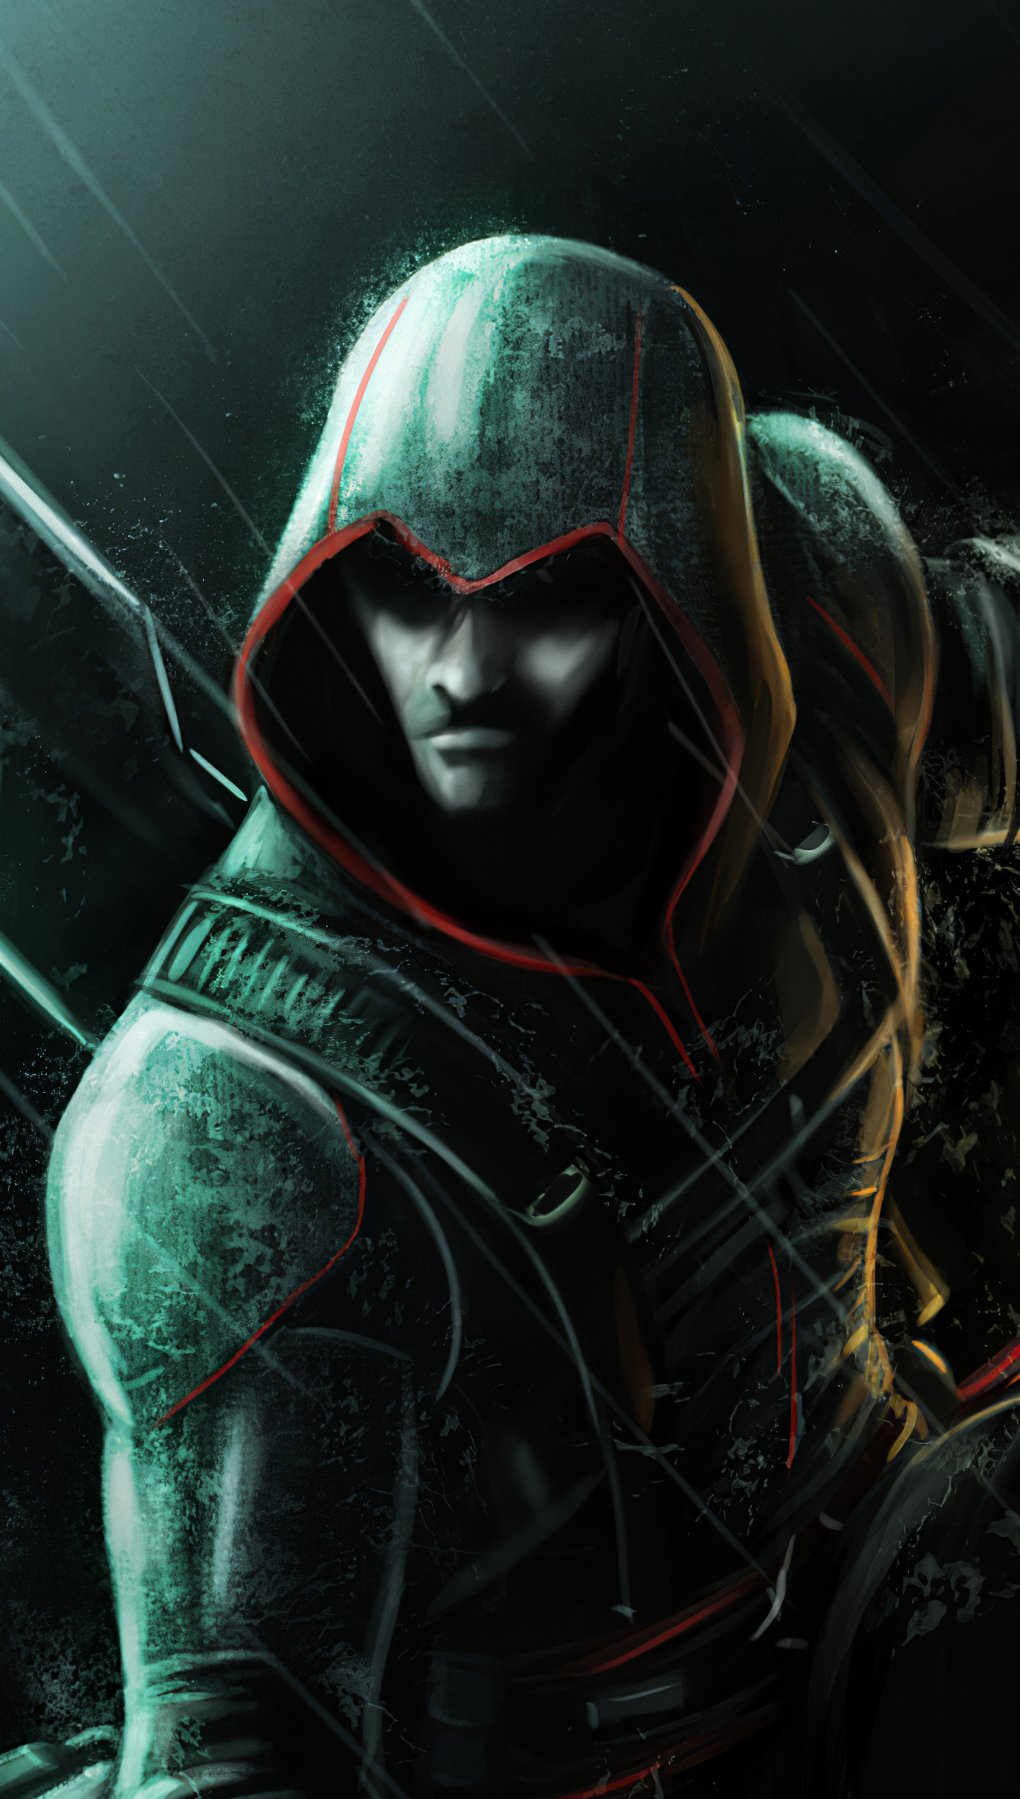 Fondos de pantalla Assassins creed Hereafter Vertical